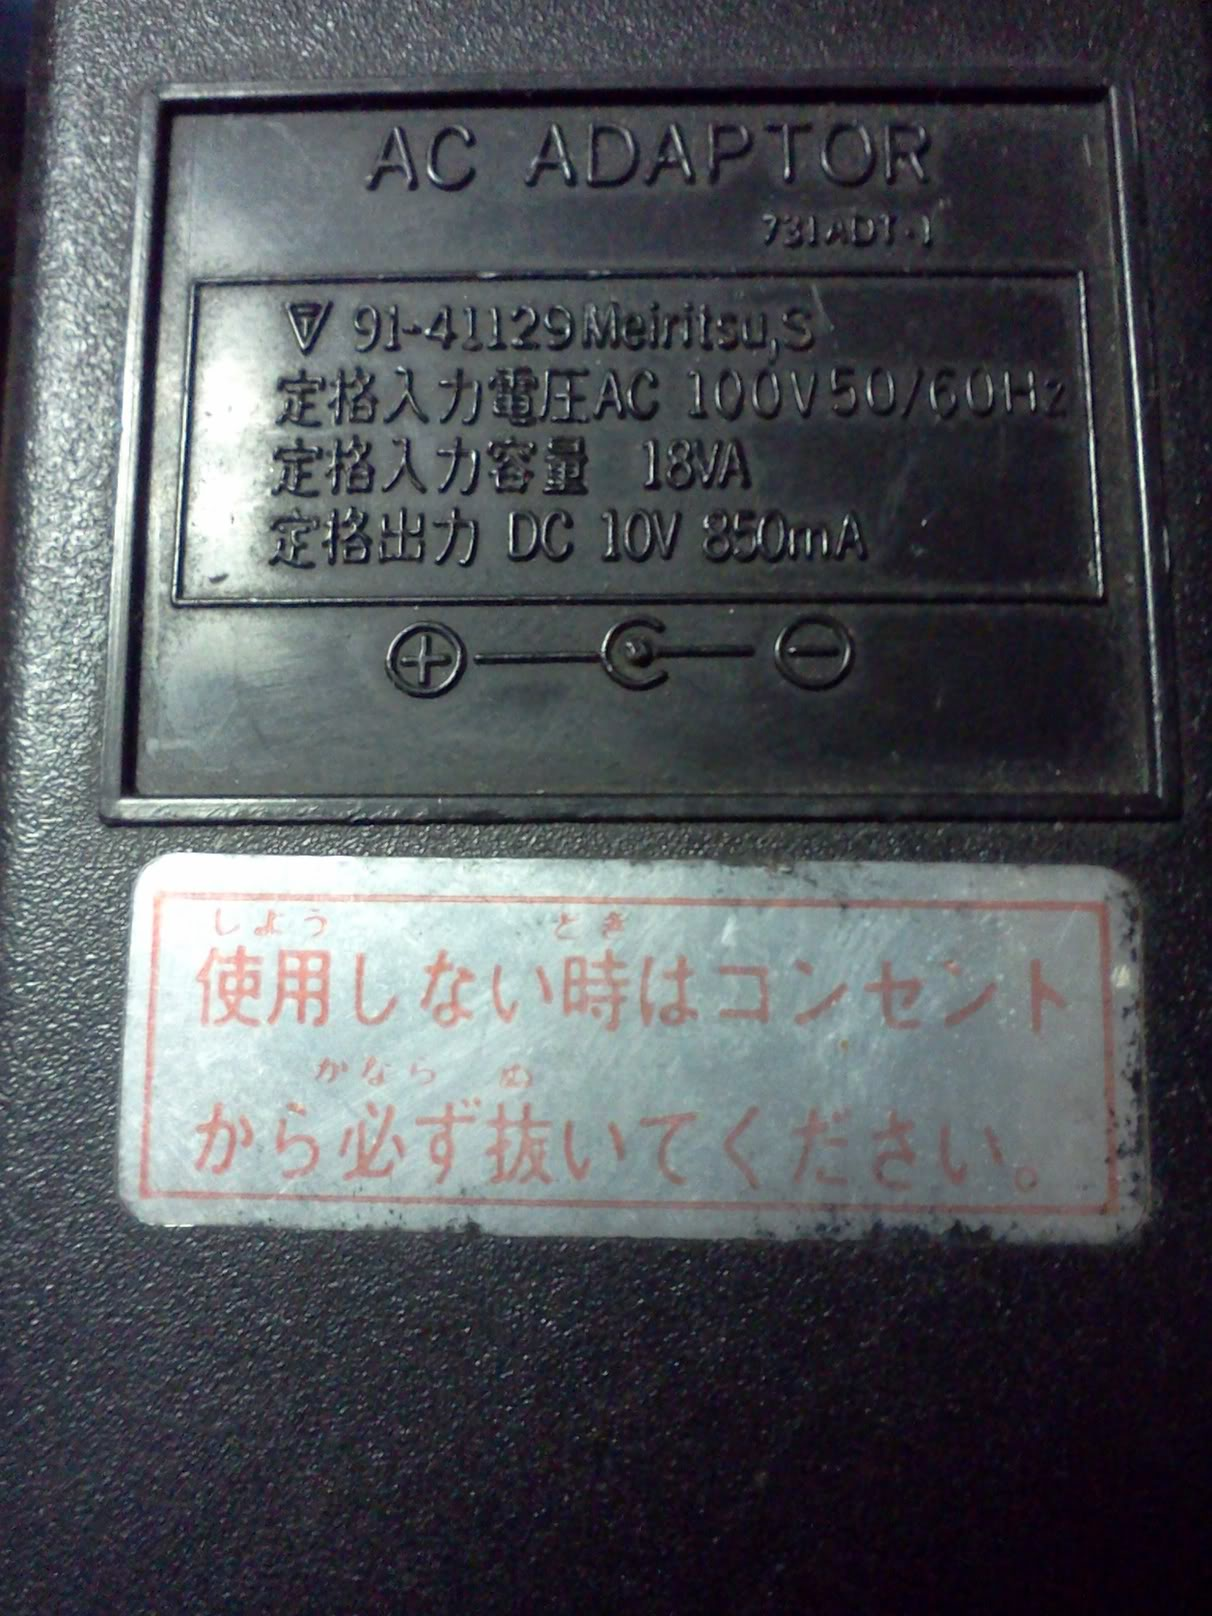 Super Famicom: quelle alimentation? - Page 2 IMG_20120402_201507